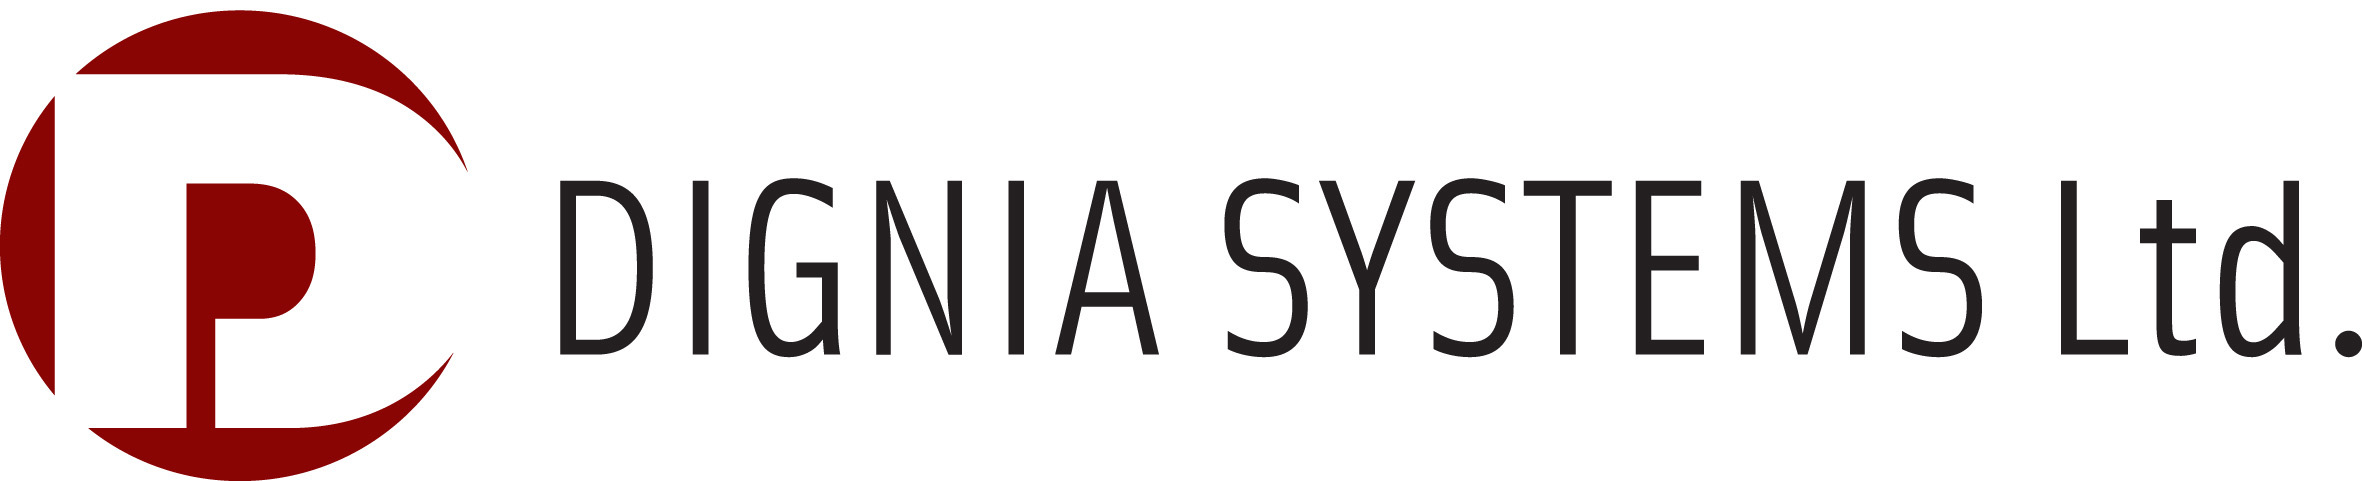 DIGNIA SYSTEMS LTD.